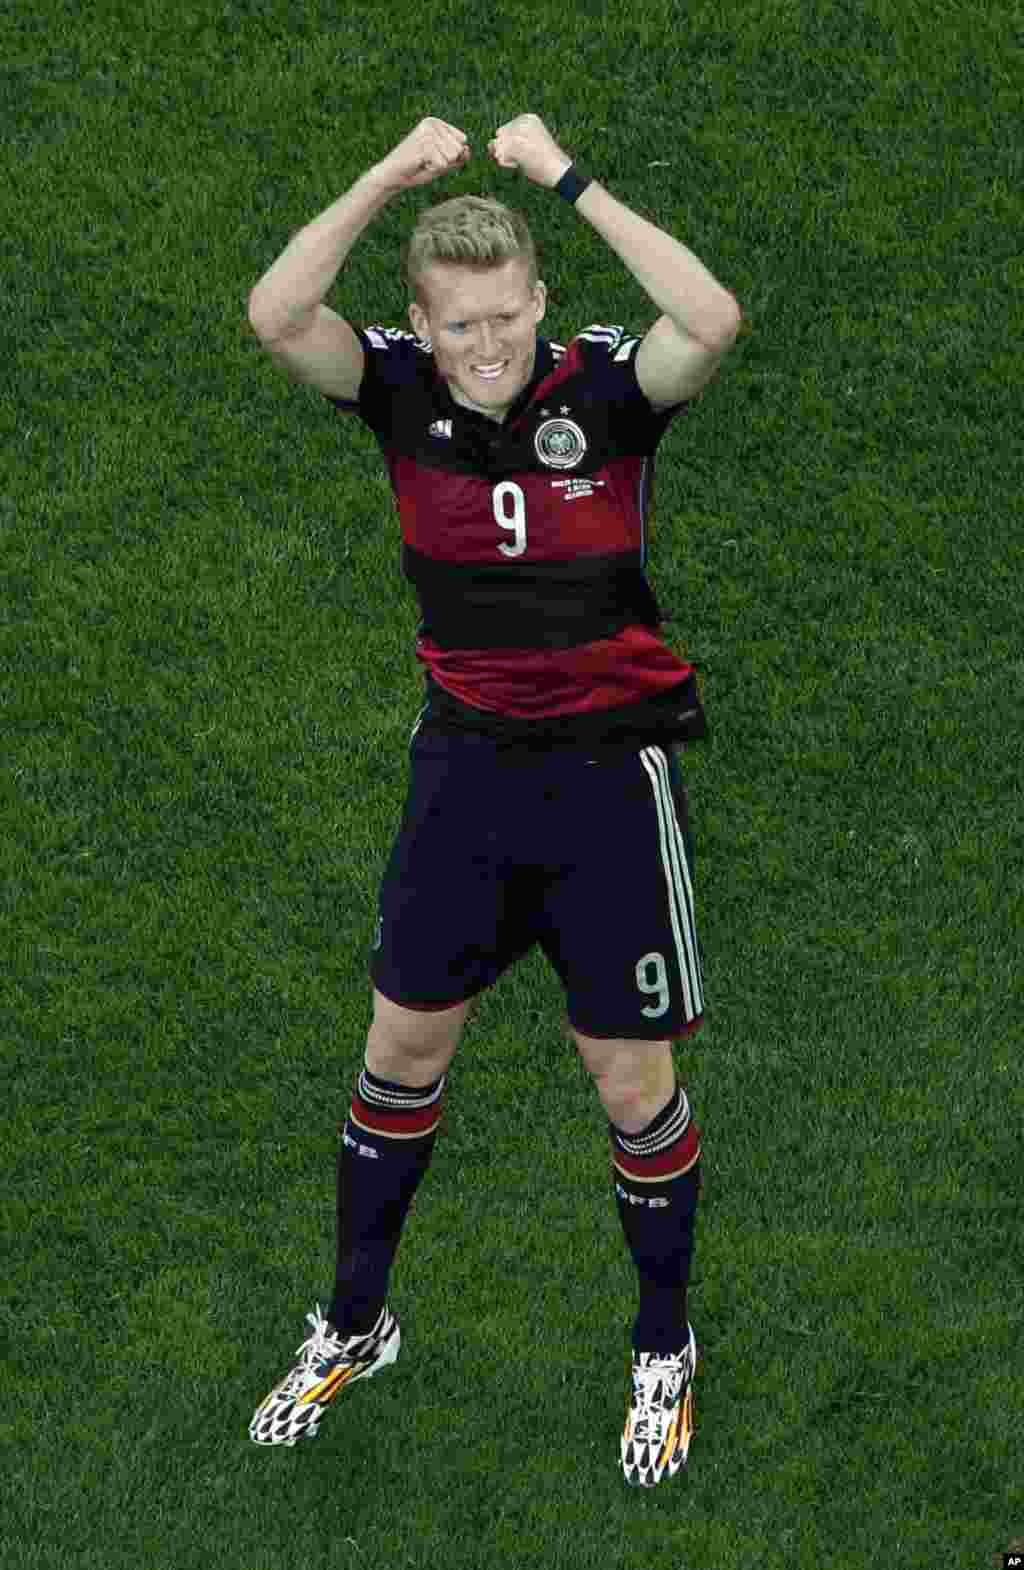 Germany's Andre Schuerrle celebrates scoring his side's 6th goal during the World Cup semifinal soccer match between Brazil and Germany at the Mineirao Stadium in Belo Horizonte, Brazil, July 8, 2014.